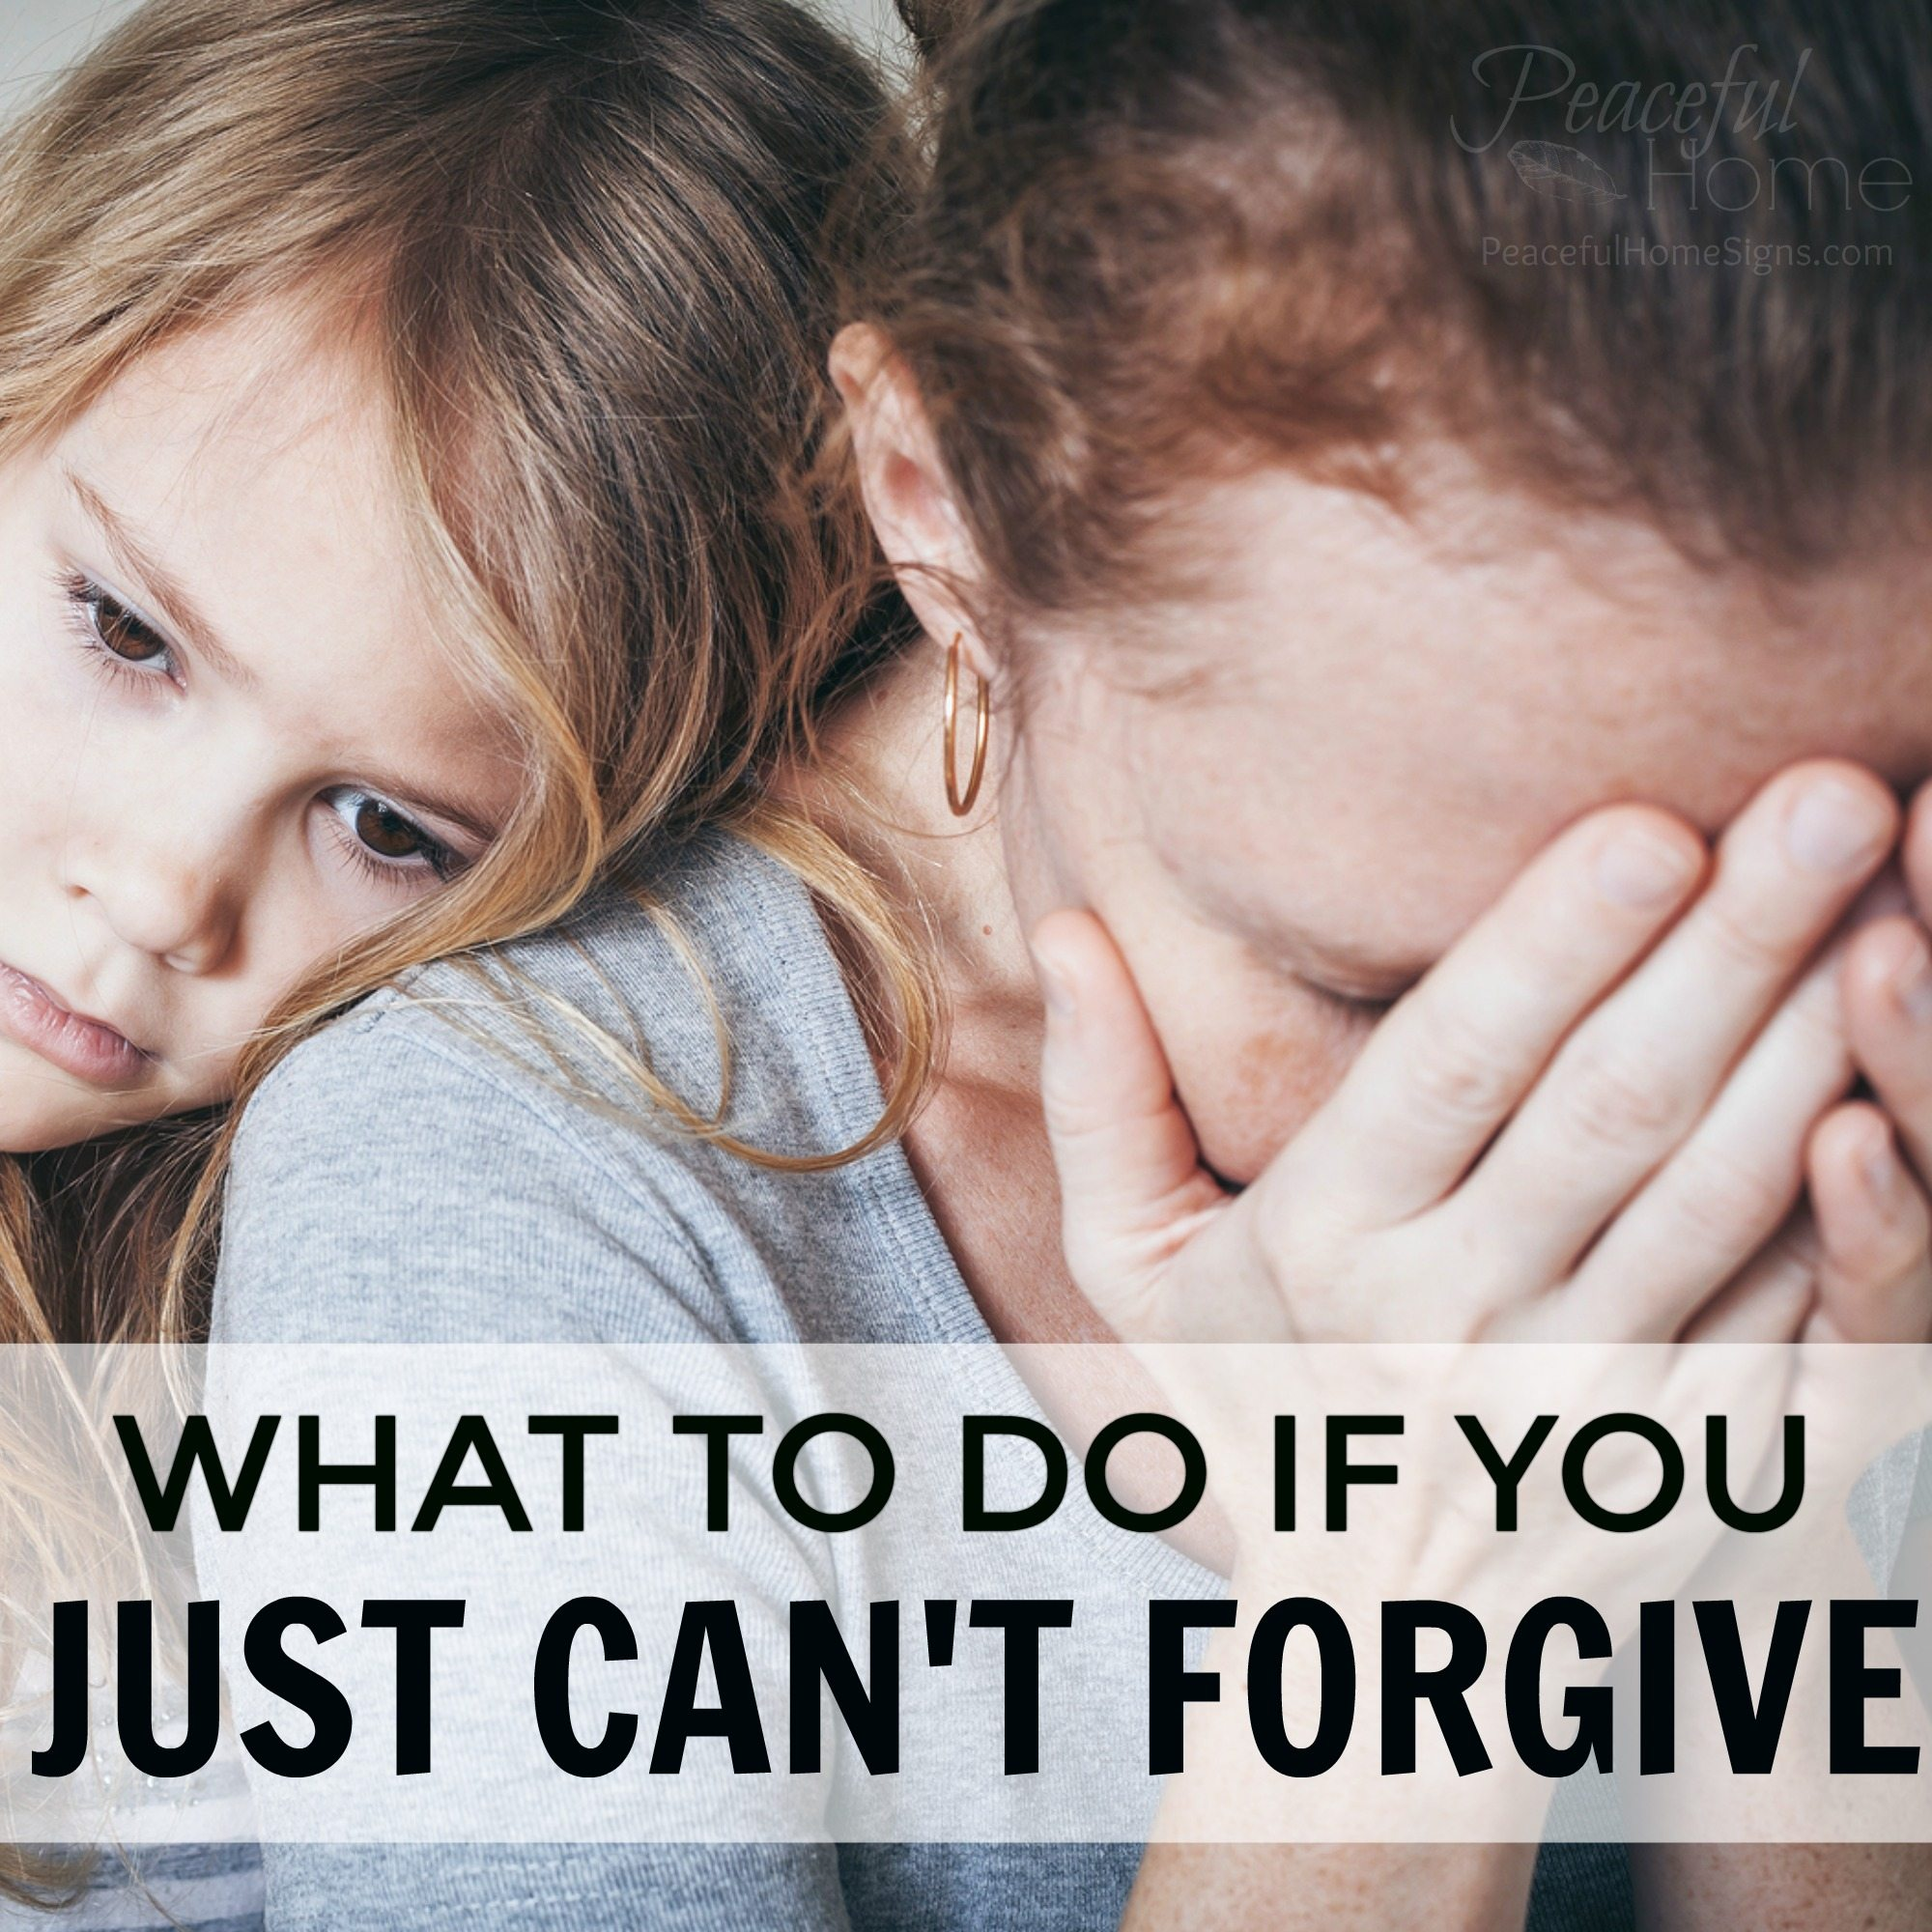 What to do if you just can't forgive